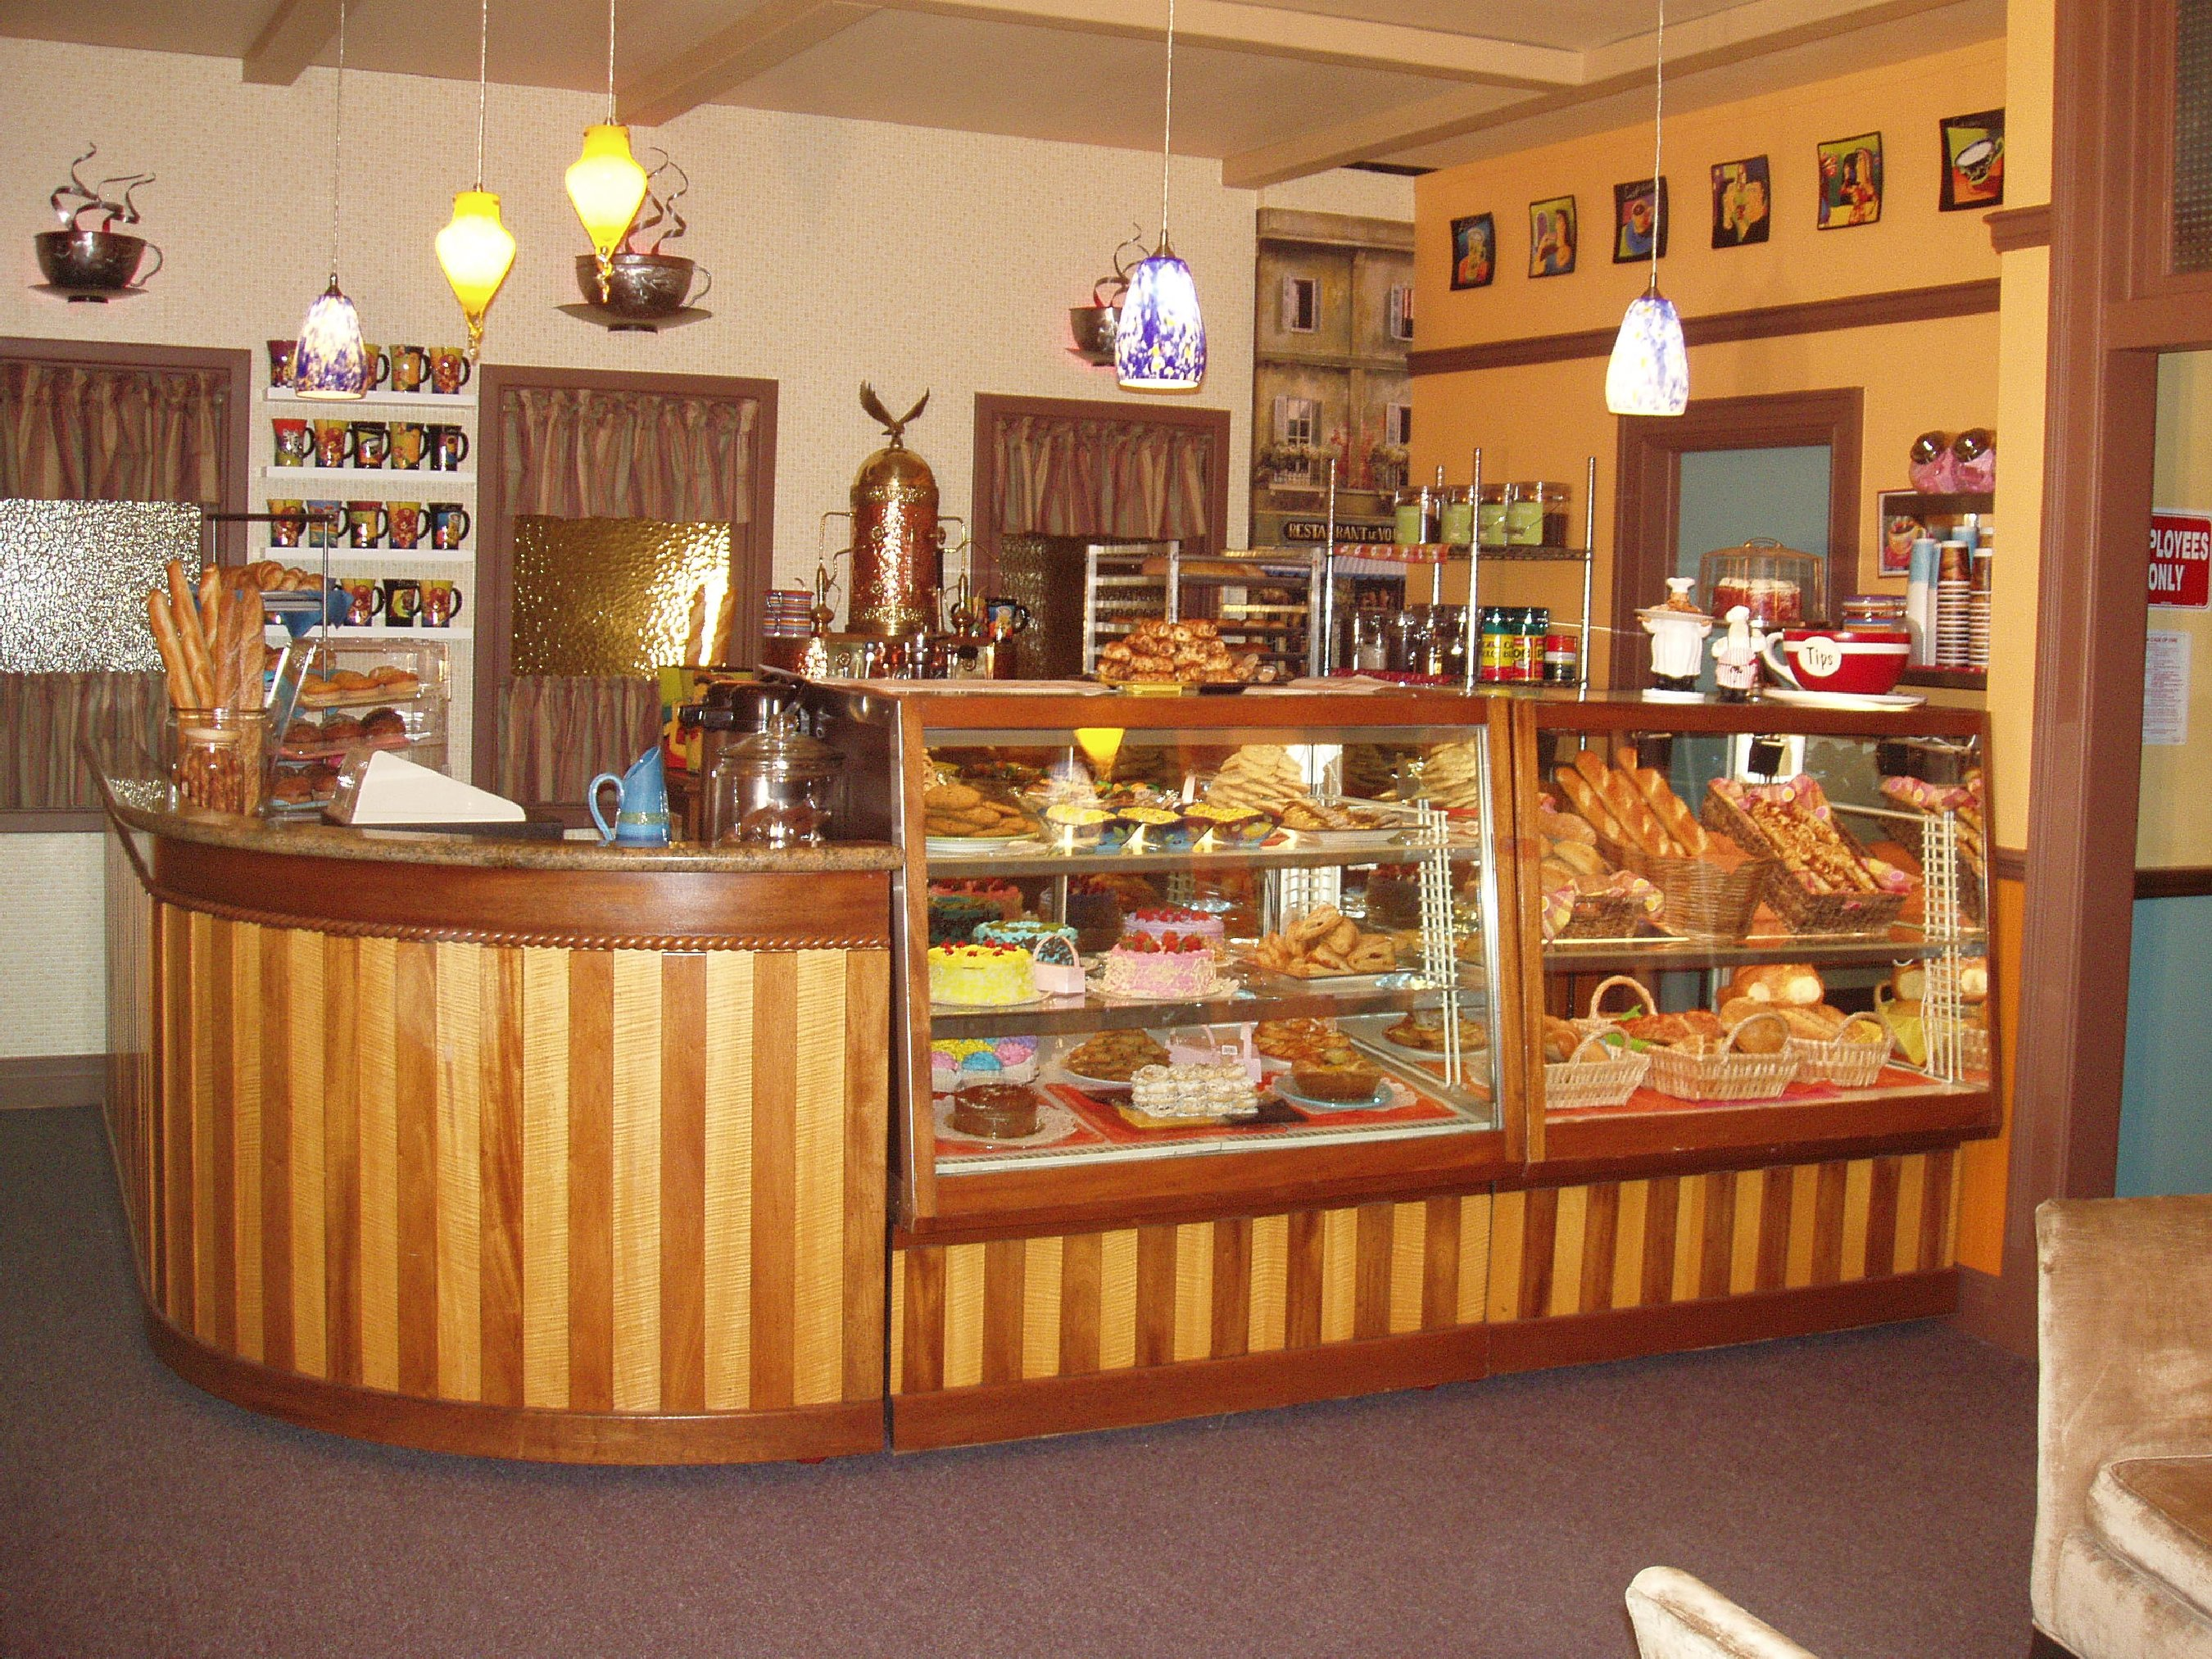 At Home Bakery Business Plan